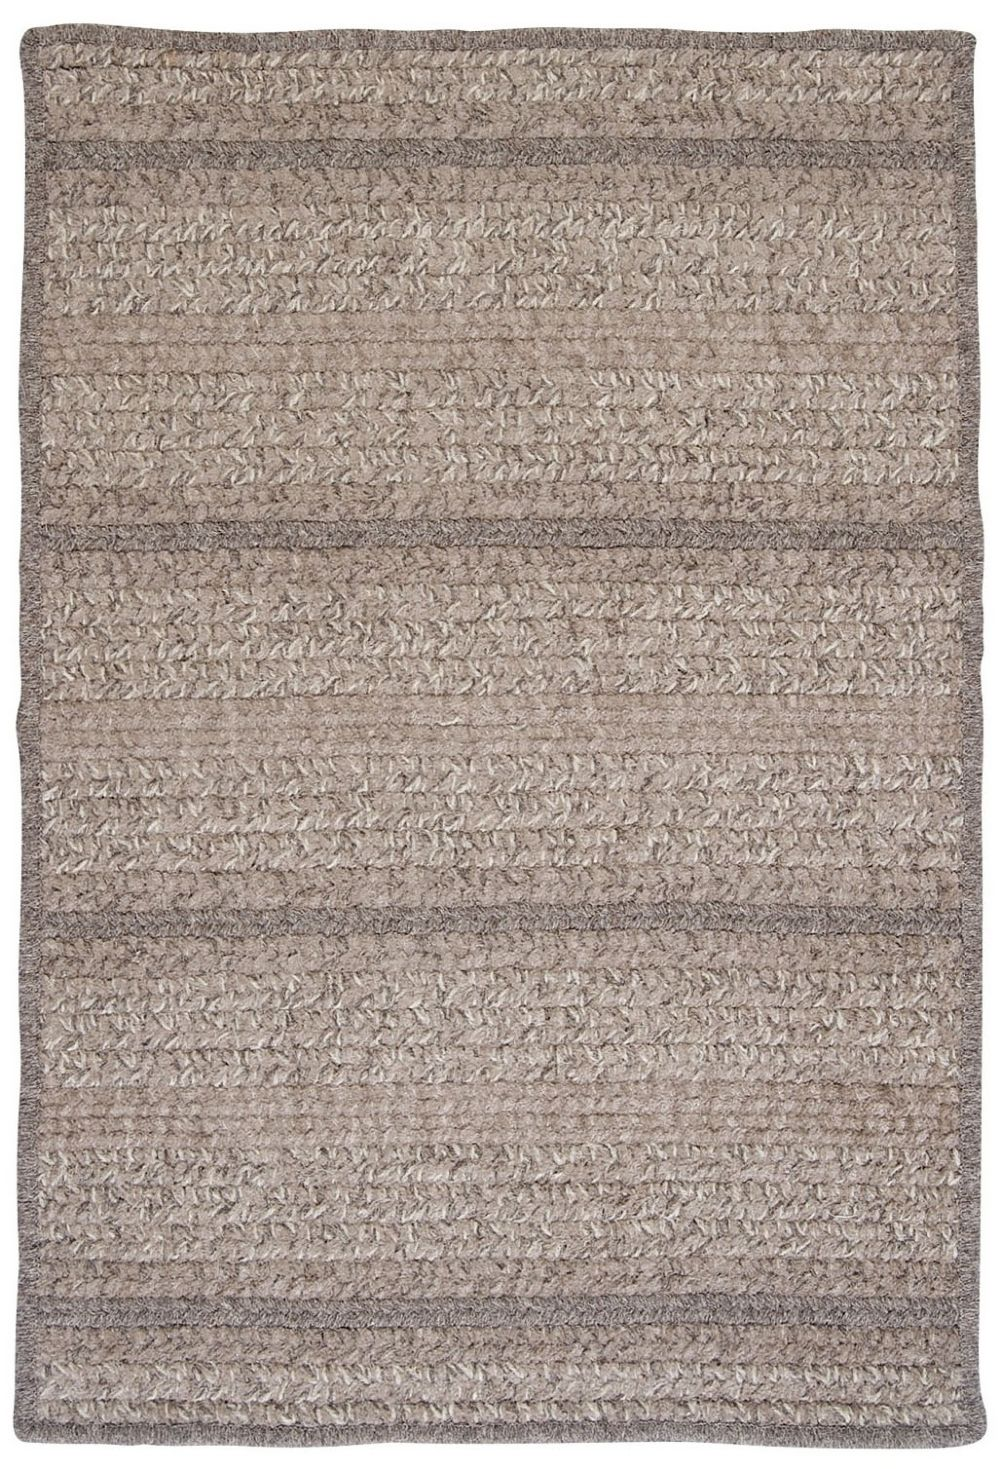 colonial mills texture-woven braided area rug collection